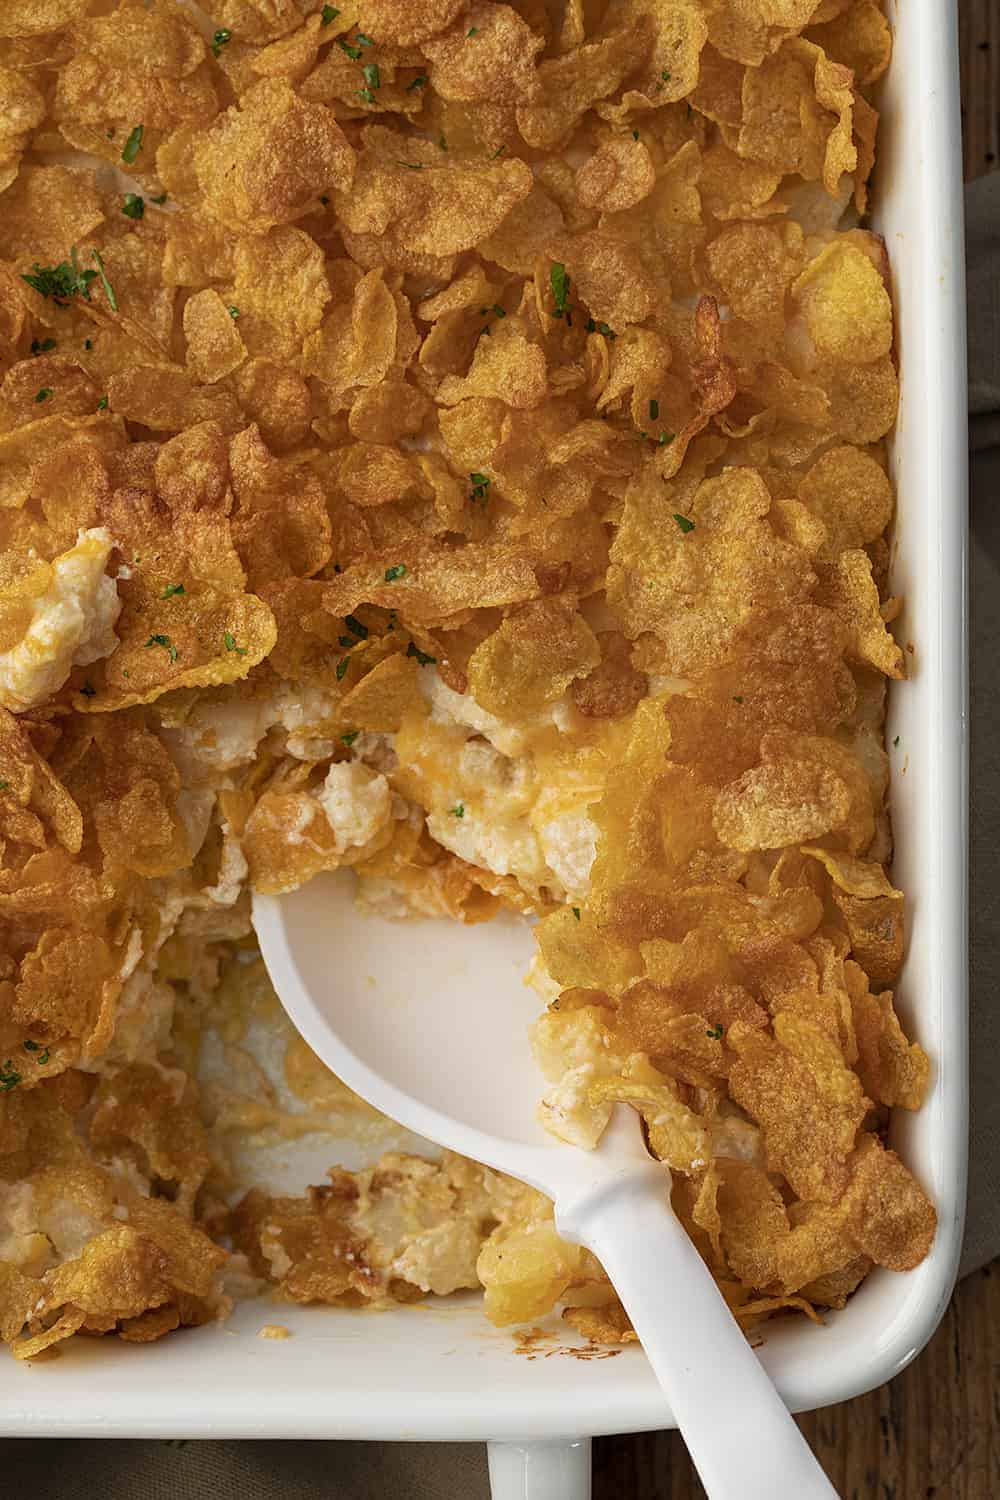 Spoon in Pan of Funeral Potatoes - Cheesy Potato Casserole